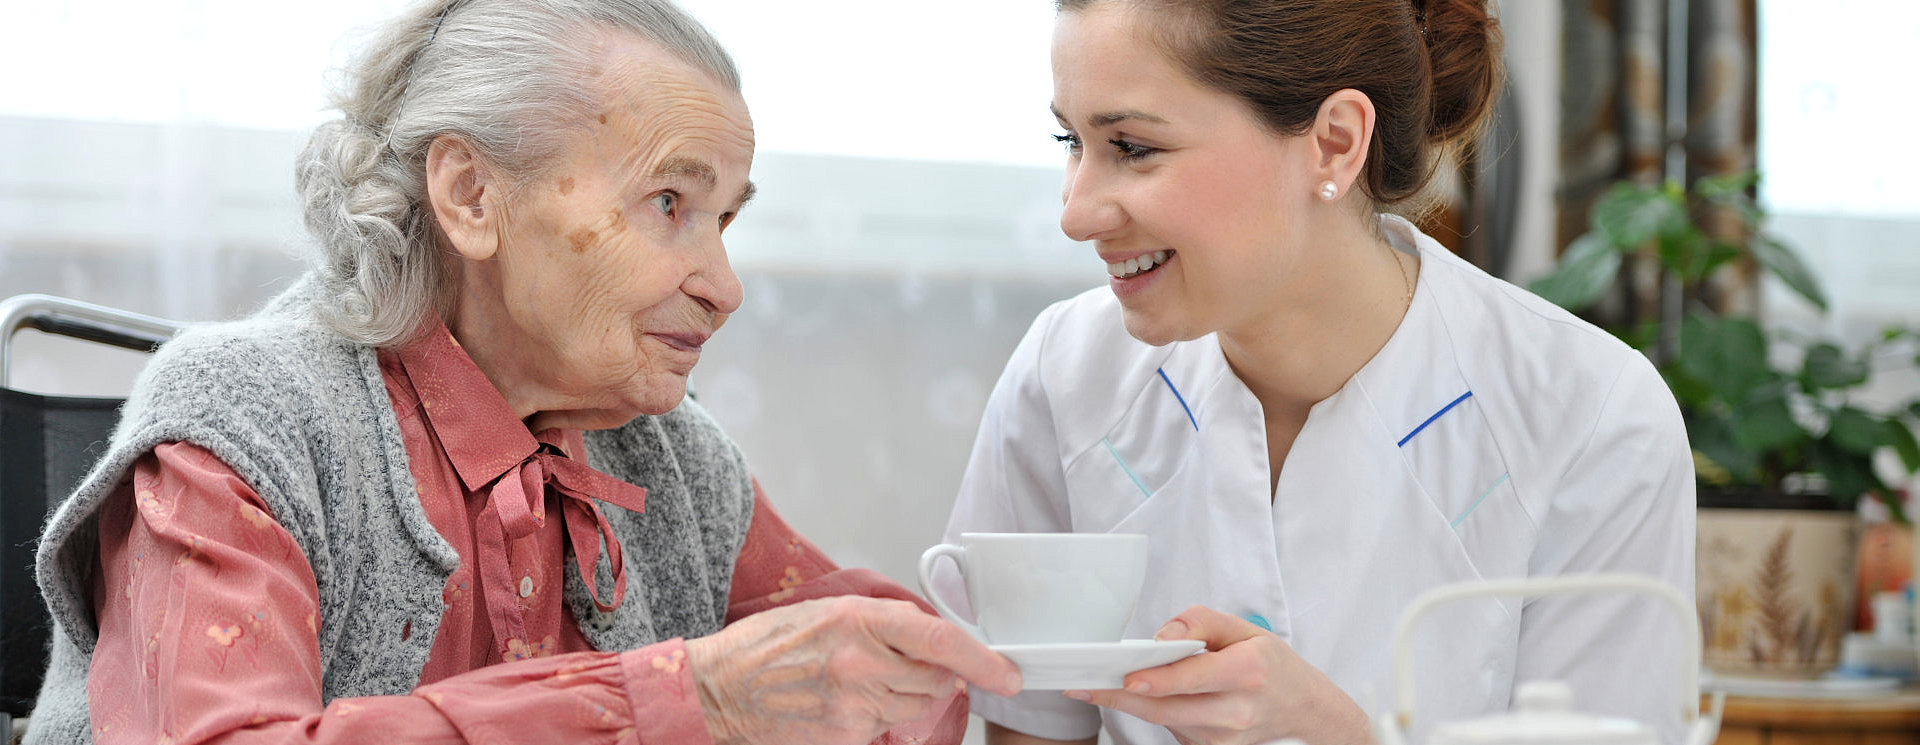 caregiver serving her patient a cup of tea